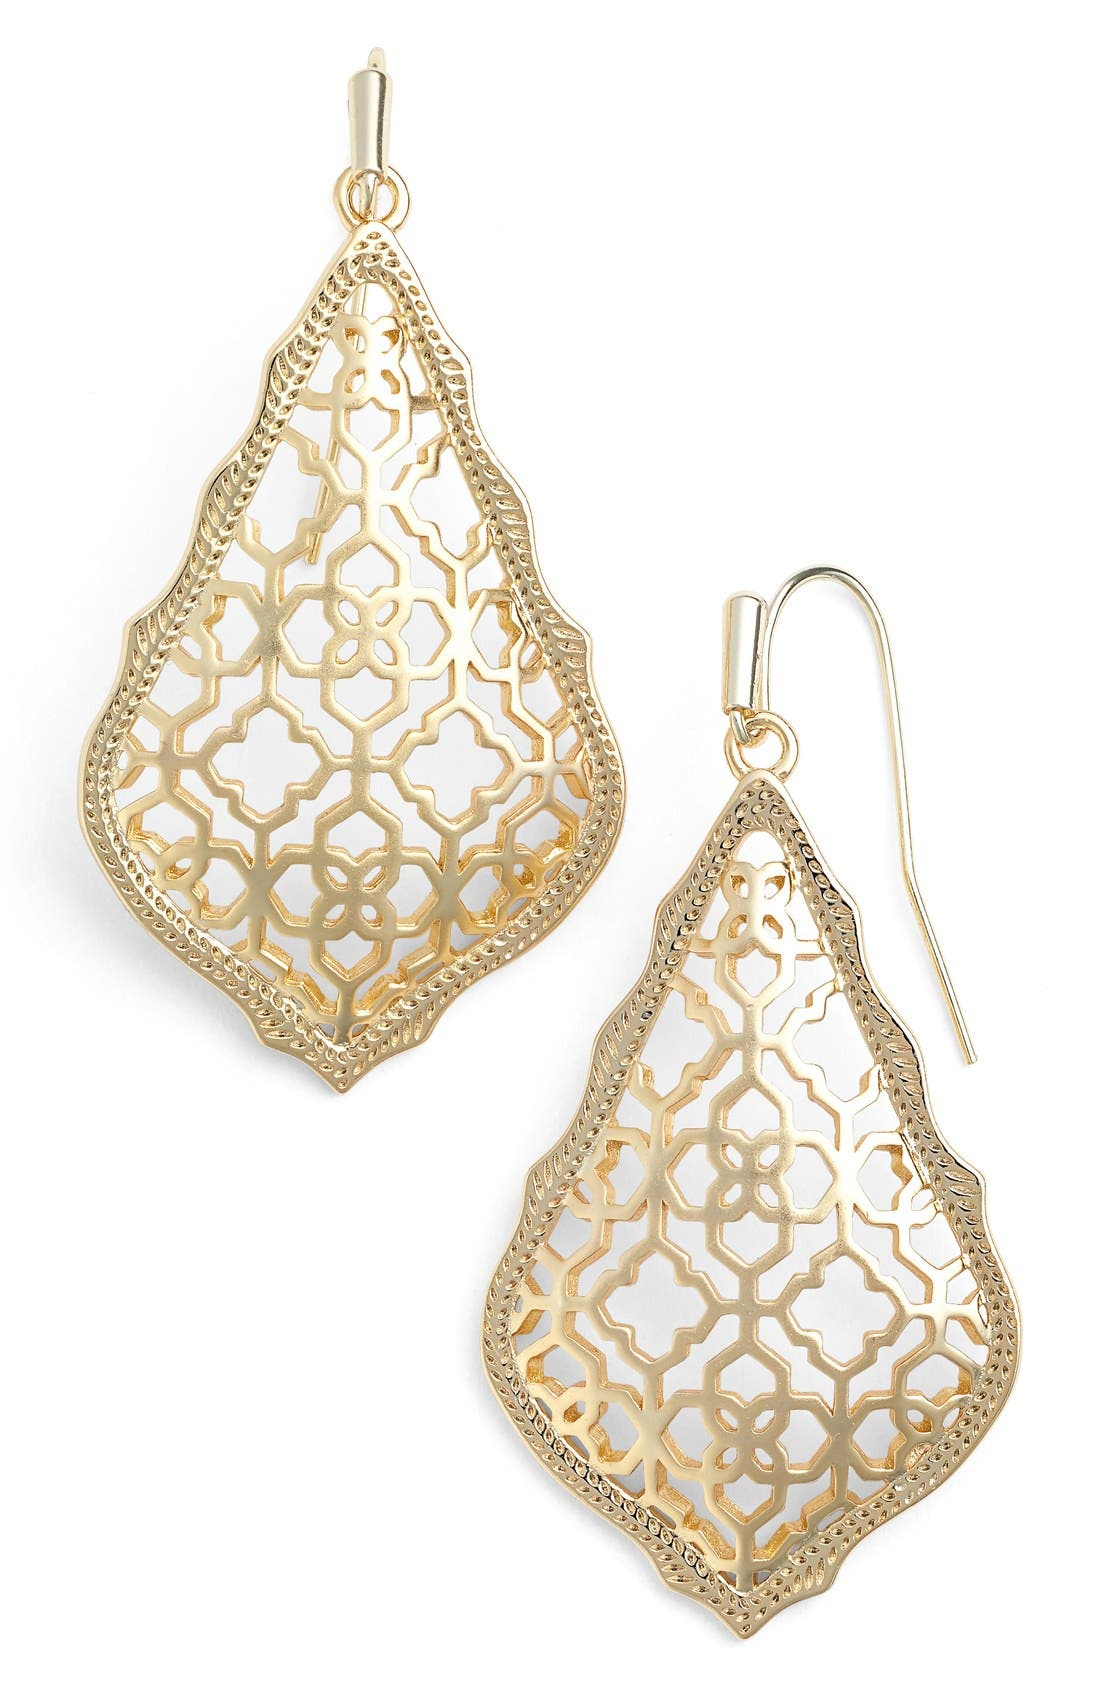 Kendra Scott 'Addie' Drop Earrings